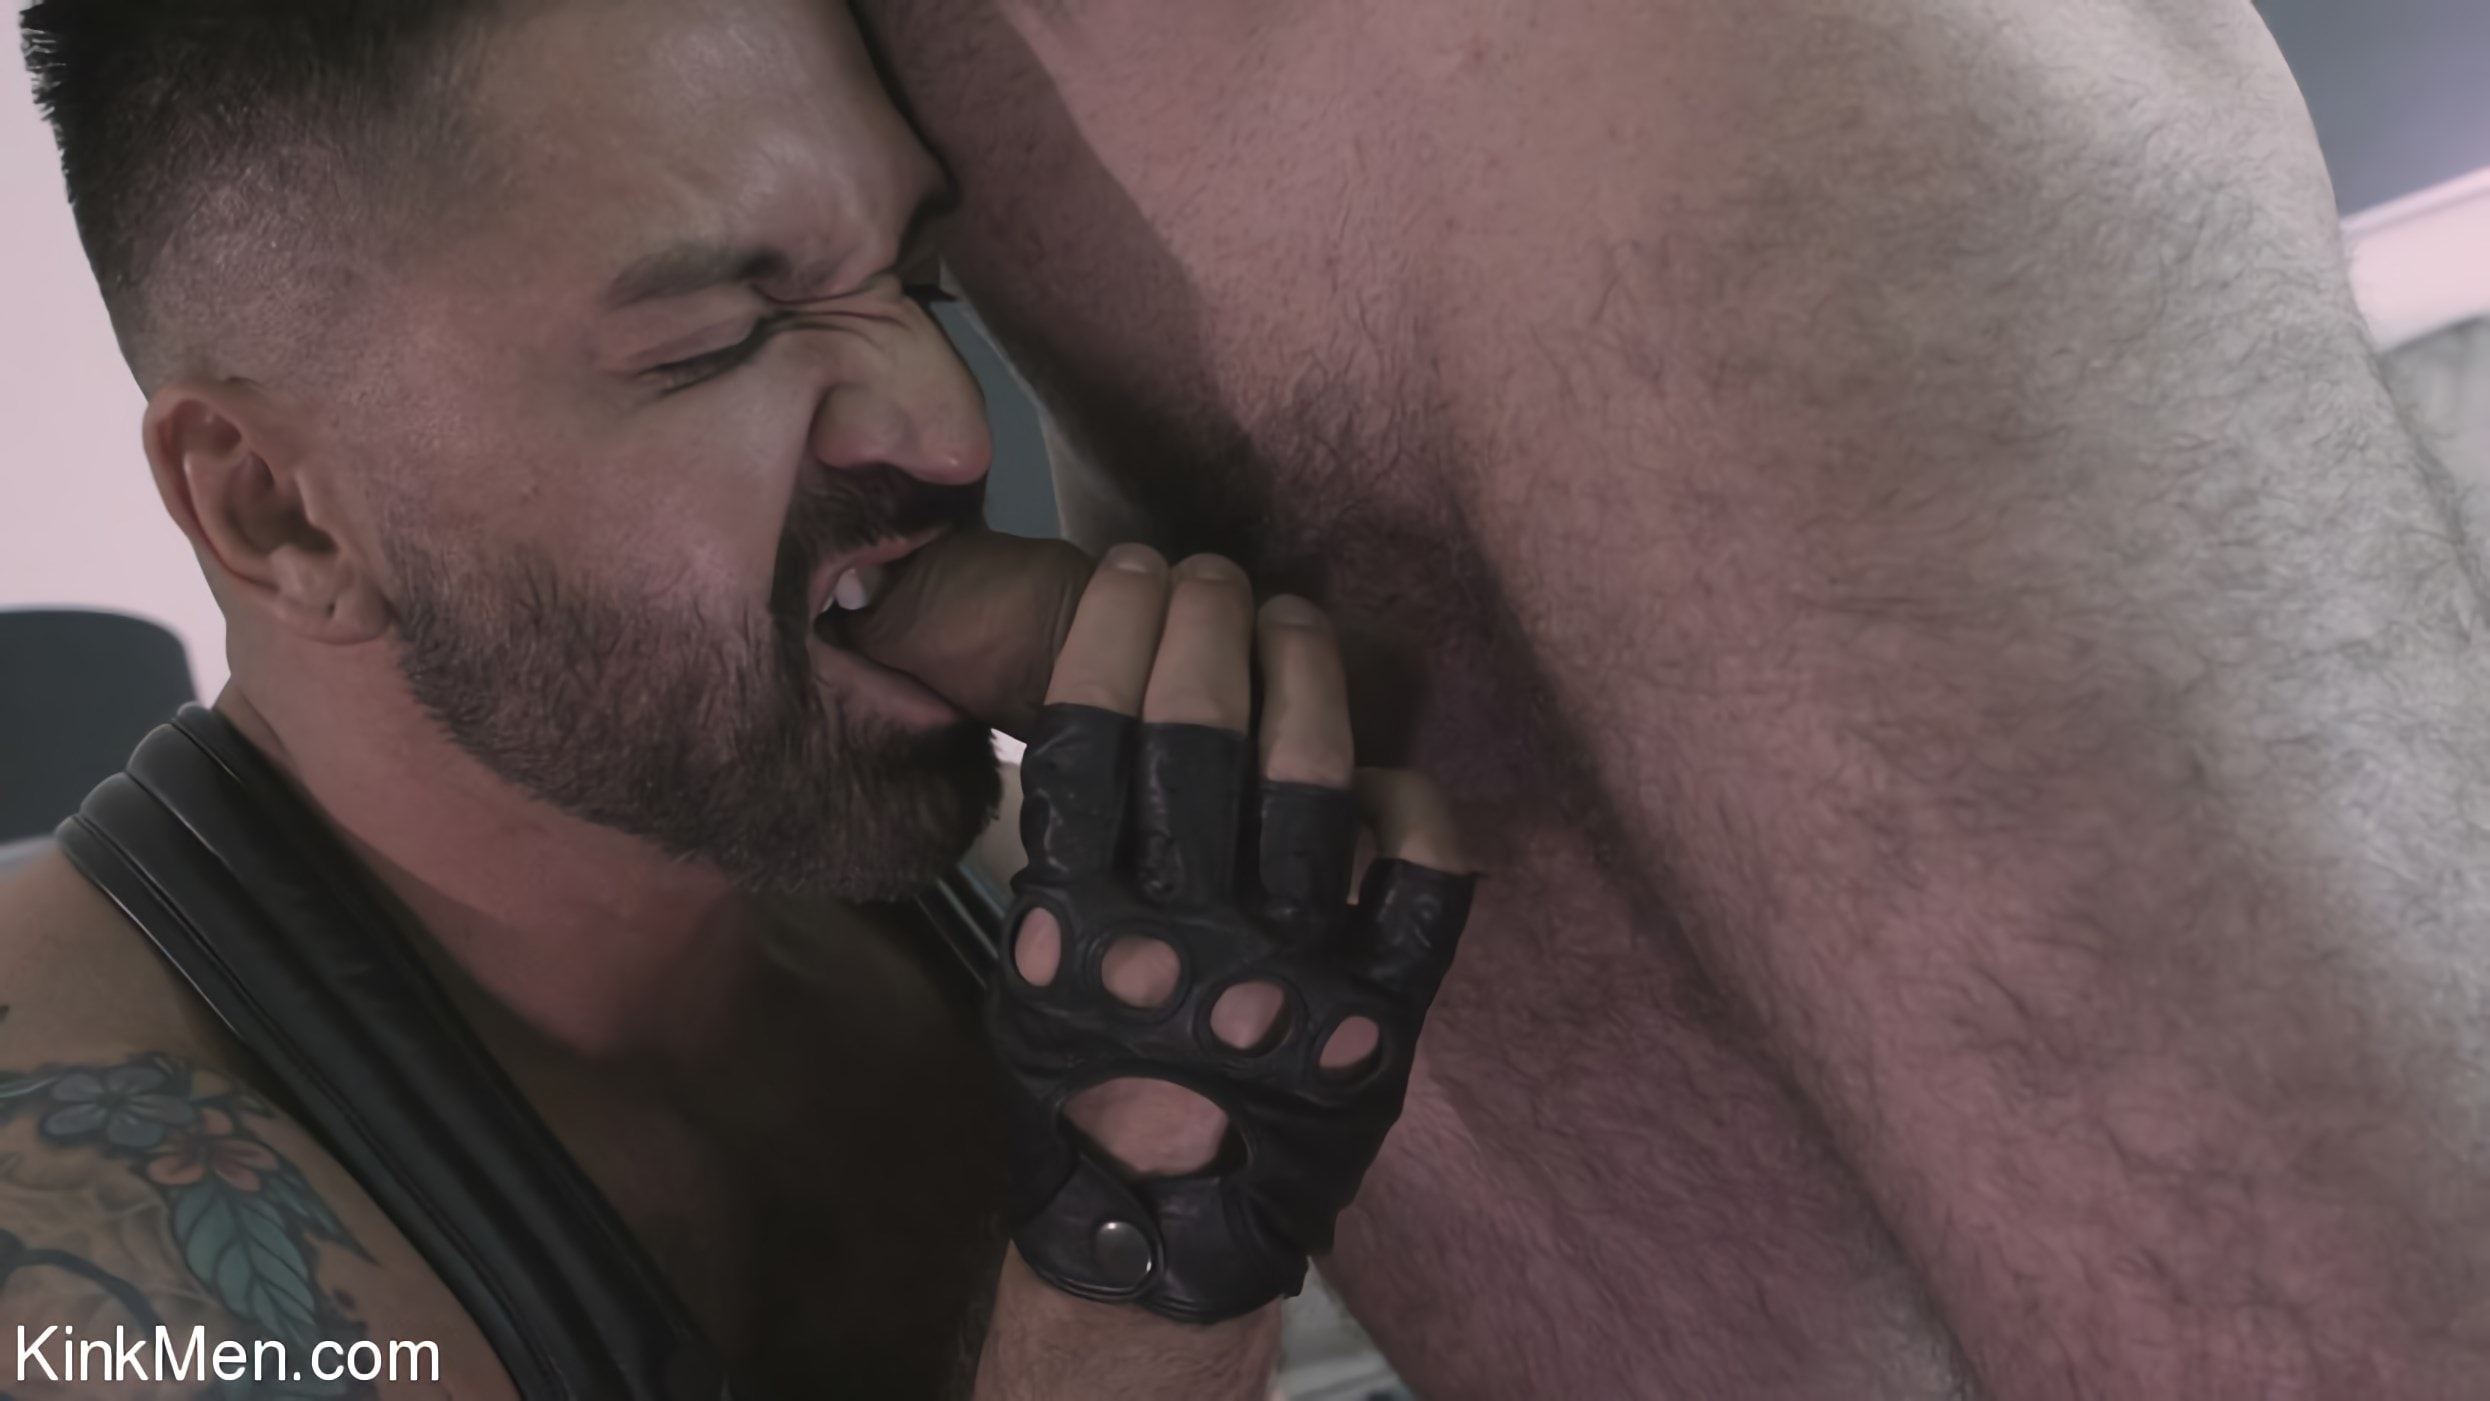 Dominic Pacifico - Good Little Bitch Boy: Dominic Pacifico takes Lucas Leon's Hungry Hole | Picture (21)